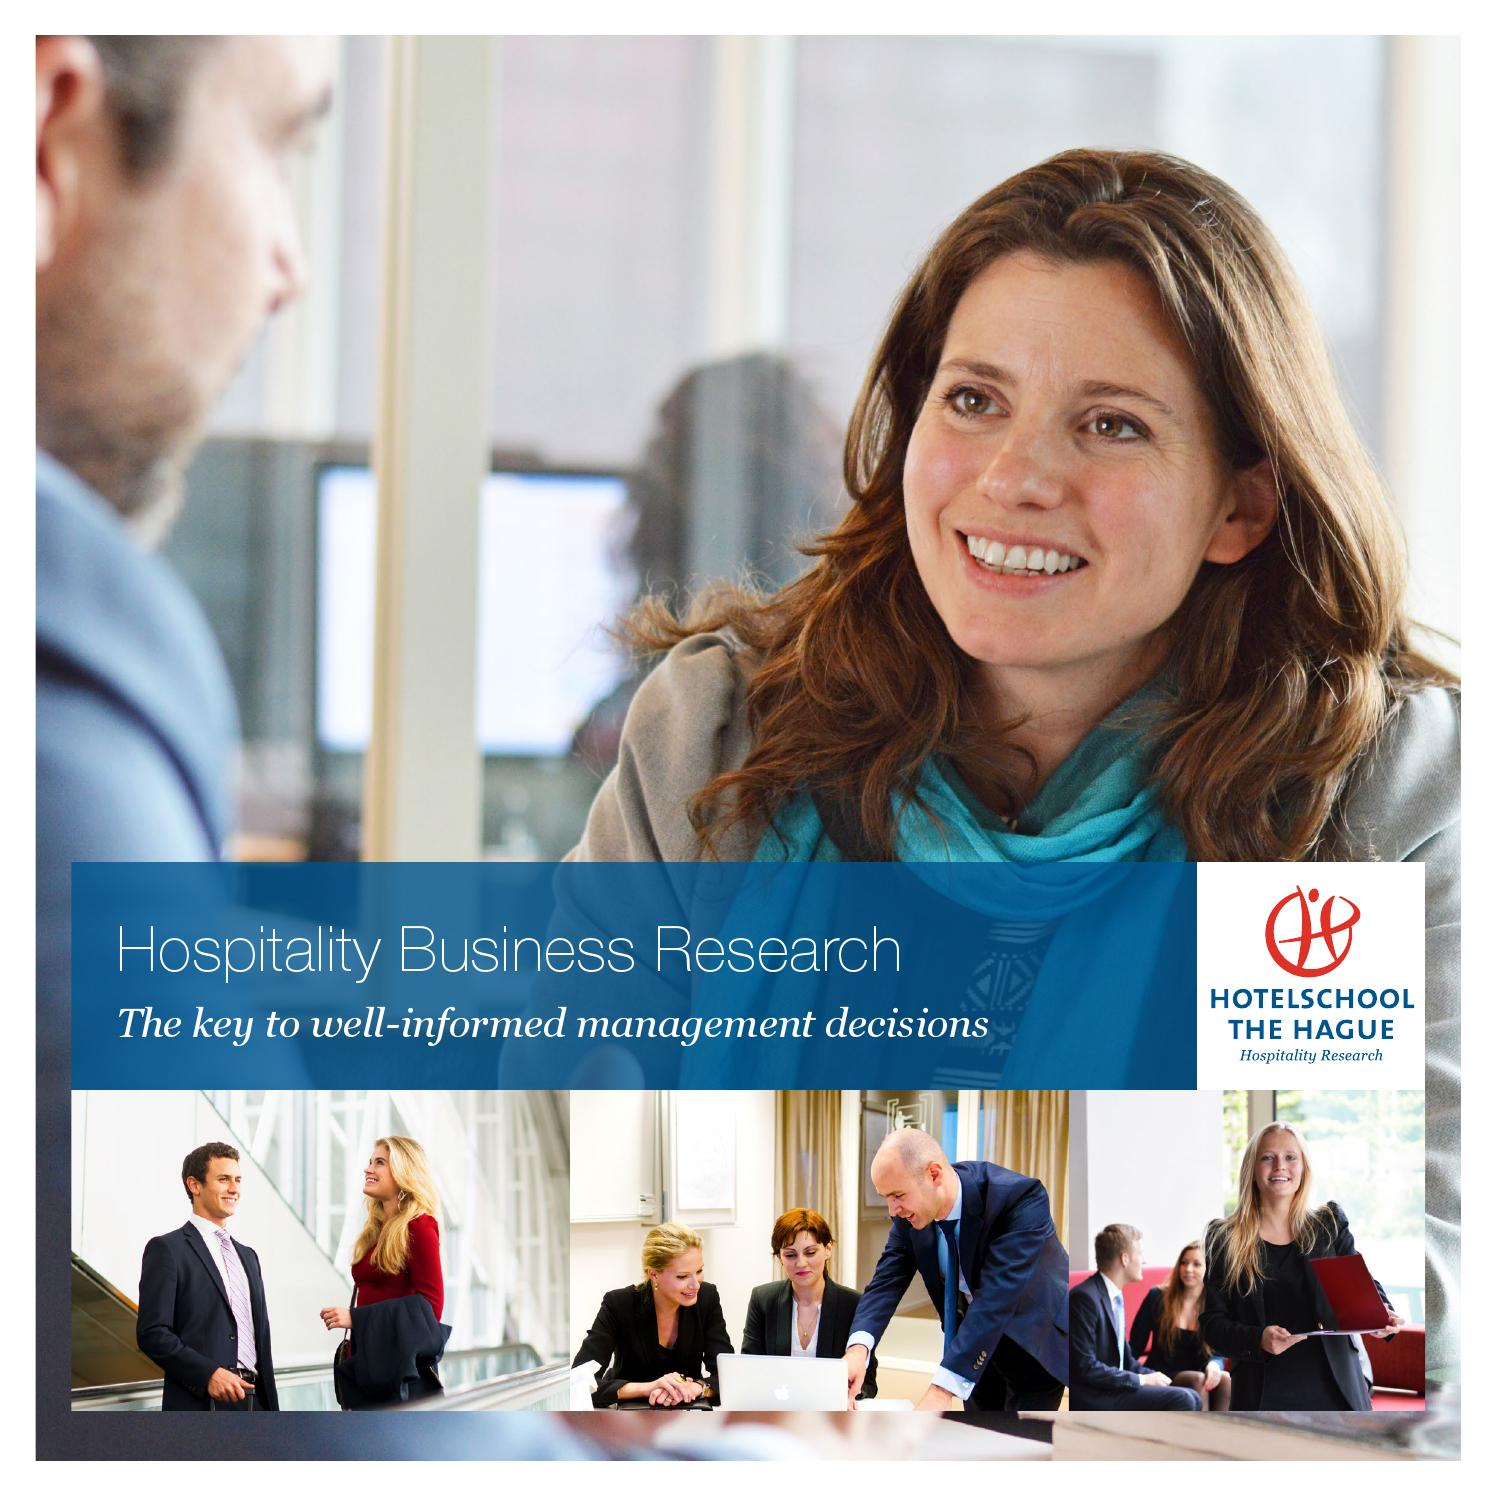 Hotelschool The Hague Hospitality Business Research By Hotelschool The Hague Issuu